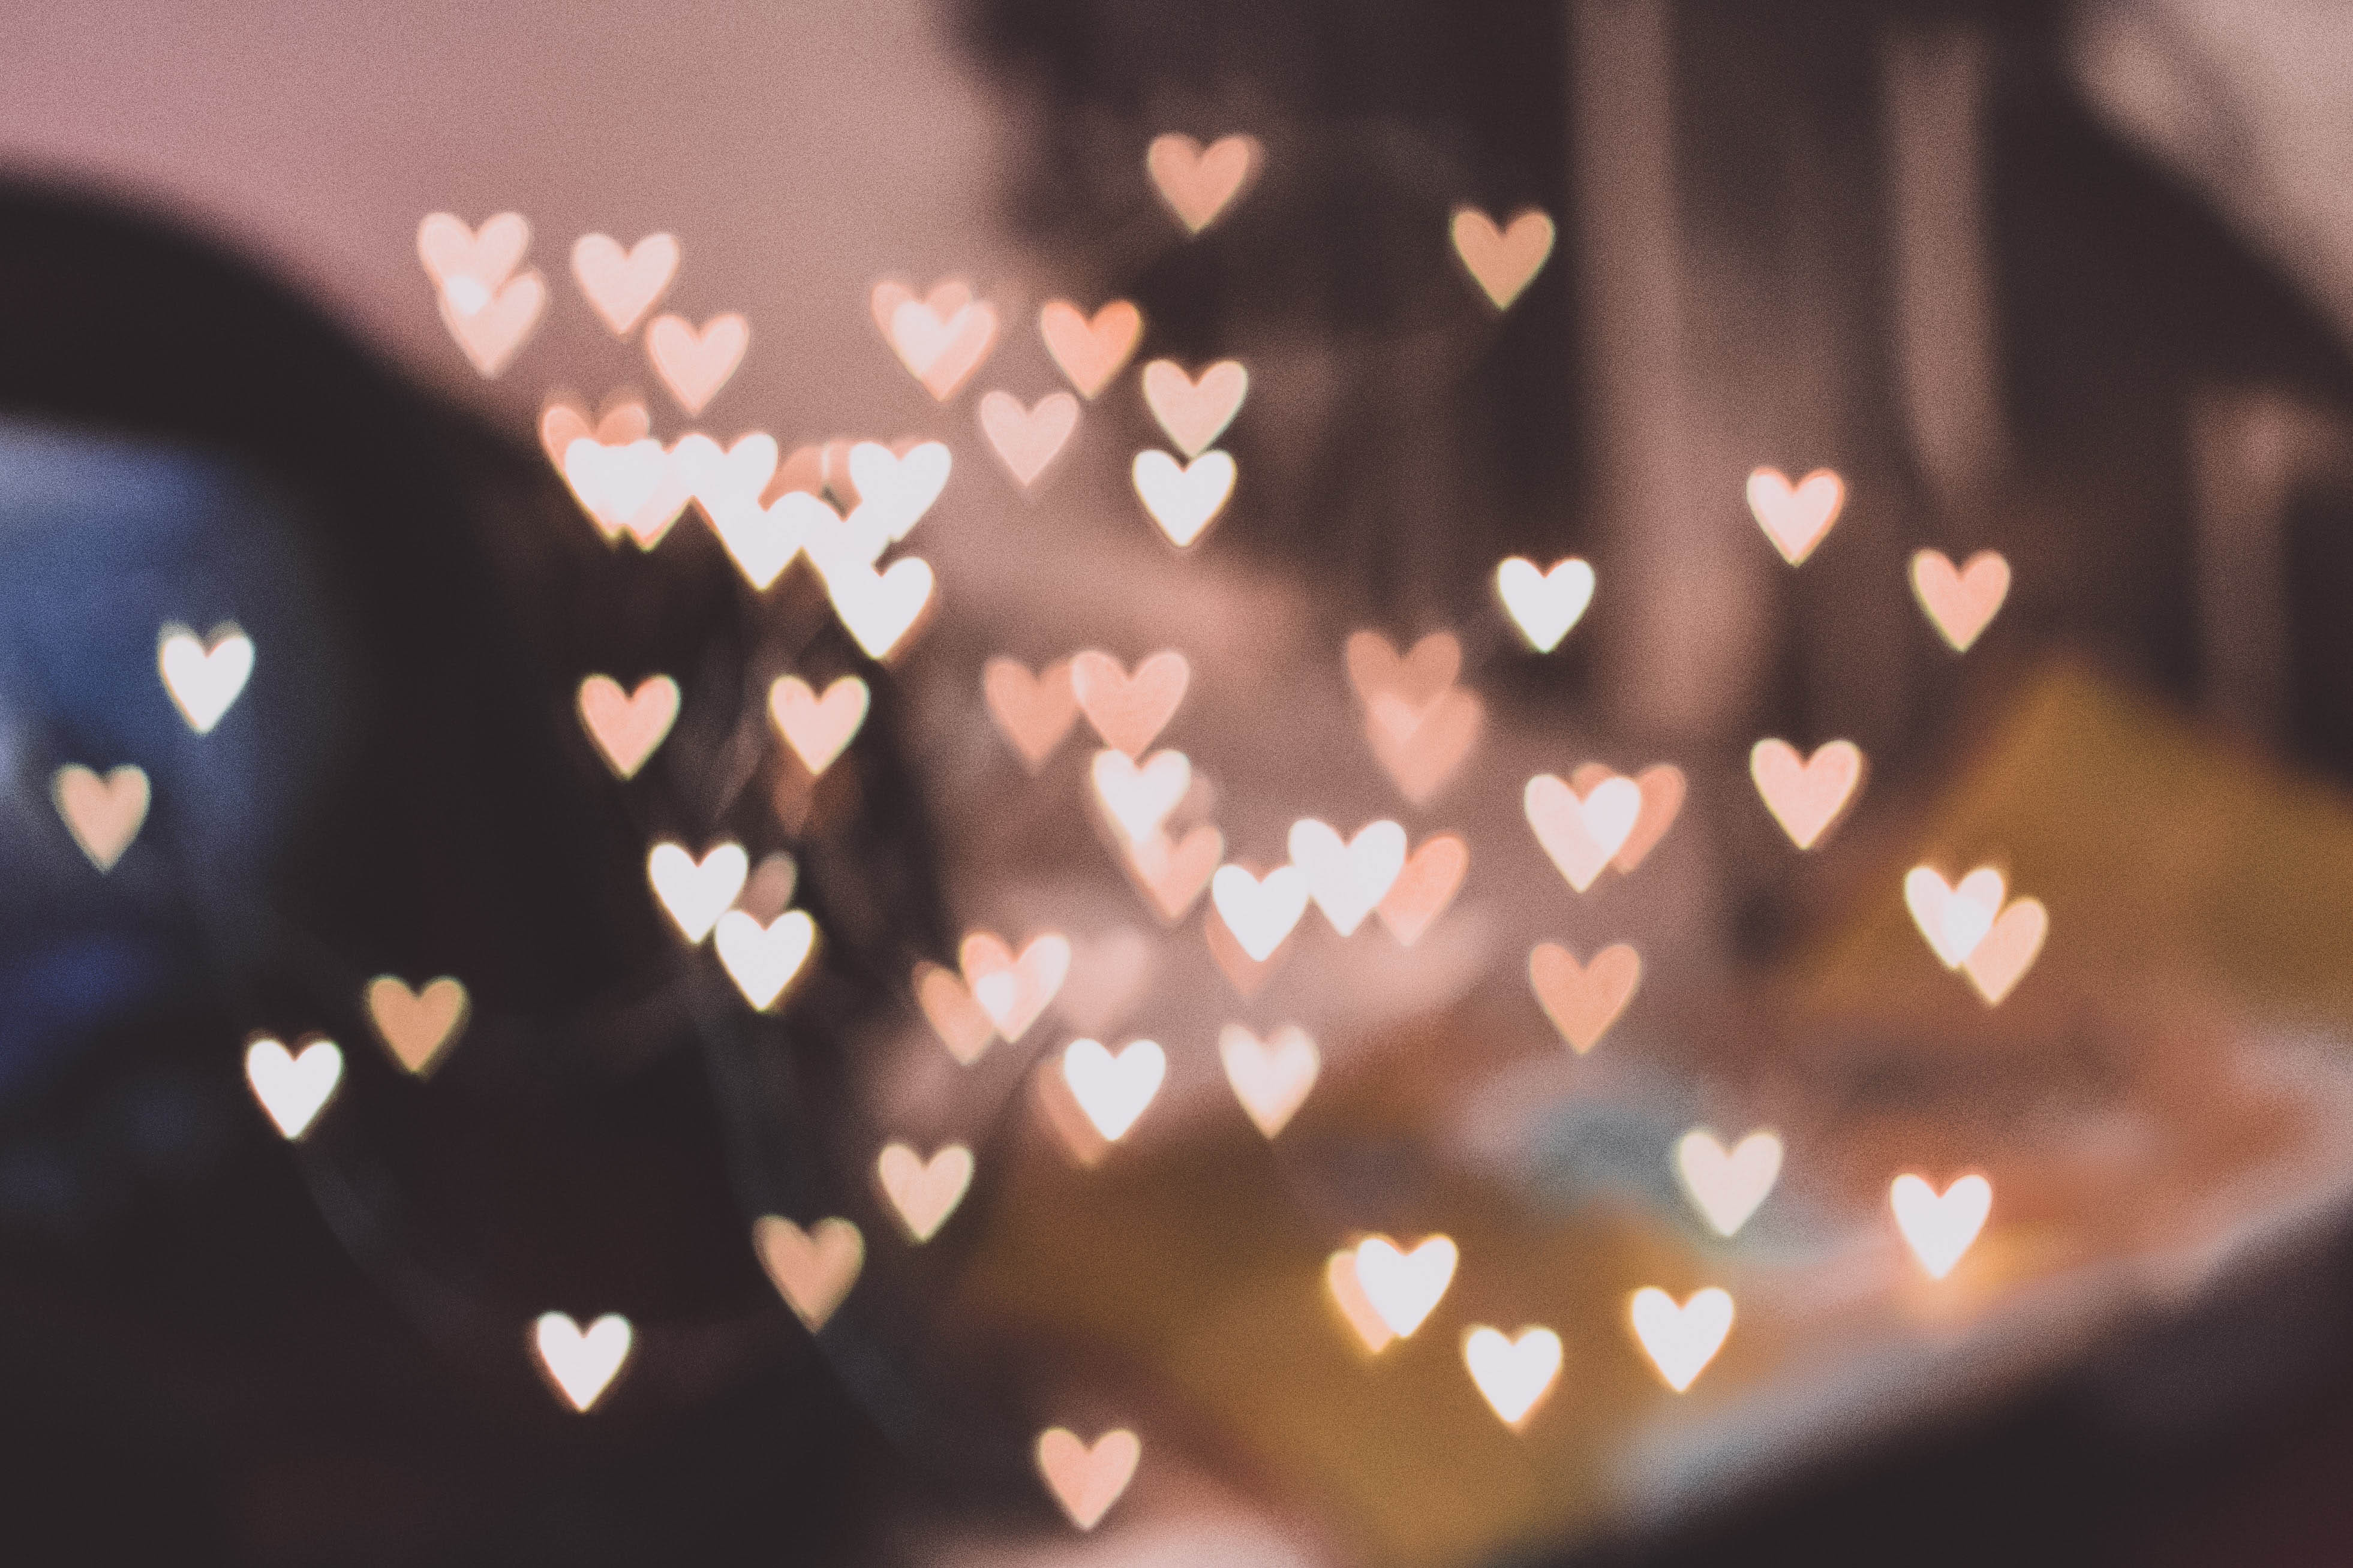 Valentines day hd backgrounds 8